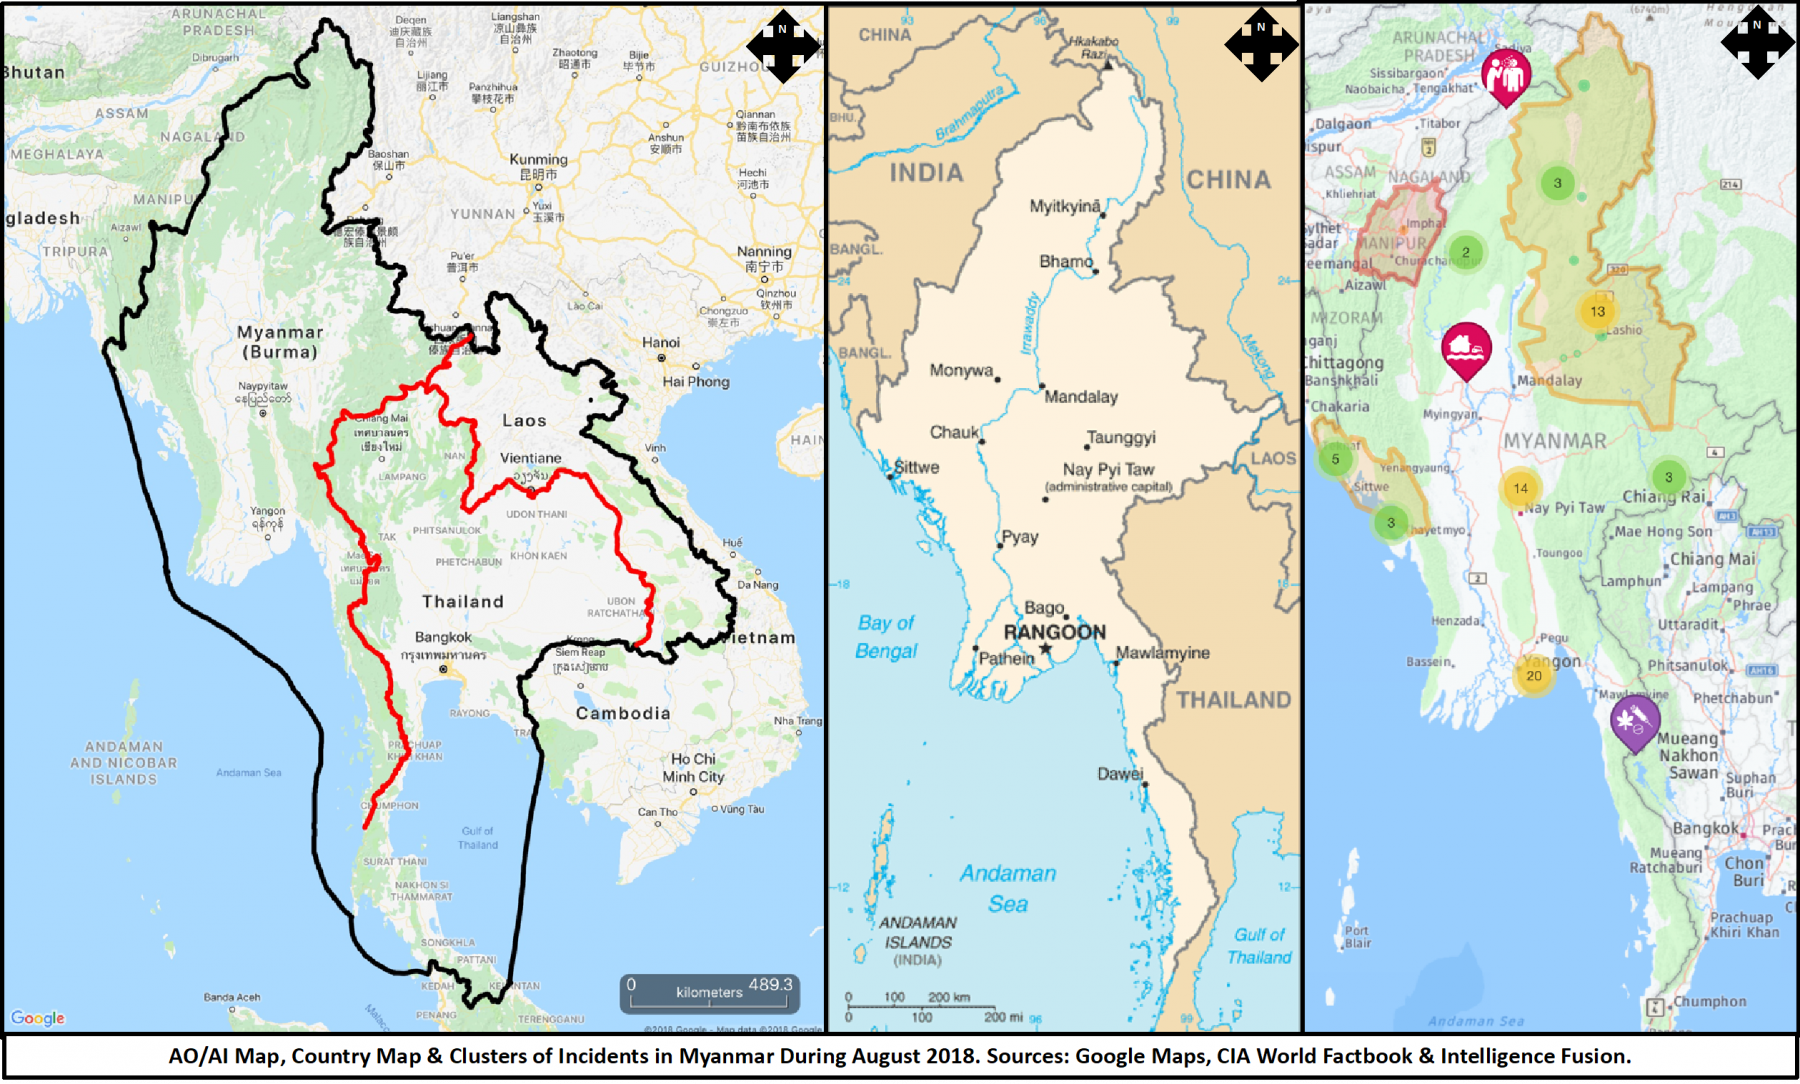 A map showing the most recent incidents in Myanmar during September 2018